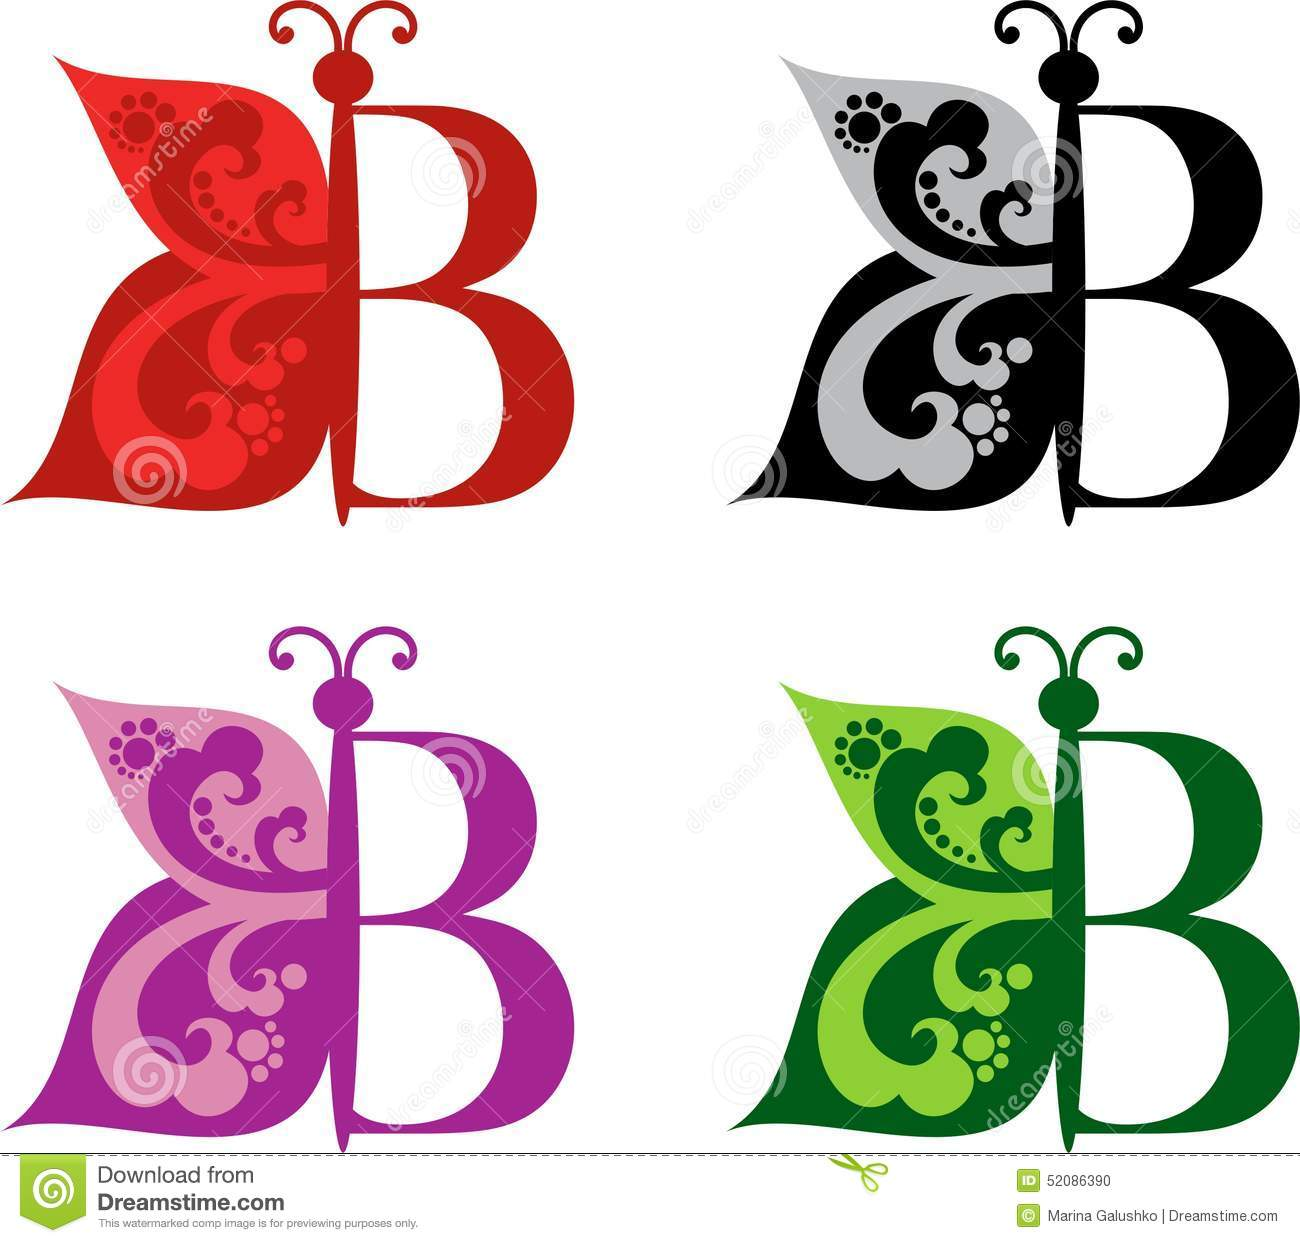 B background butterfly colour different letter logotype variants